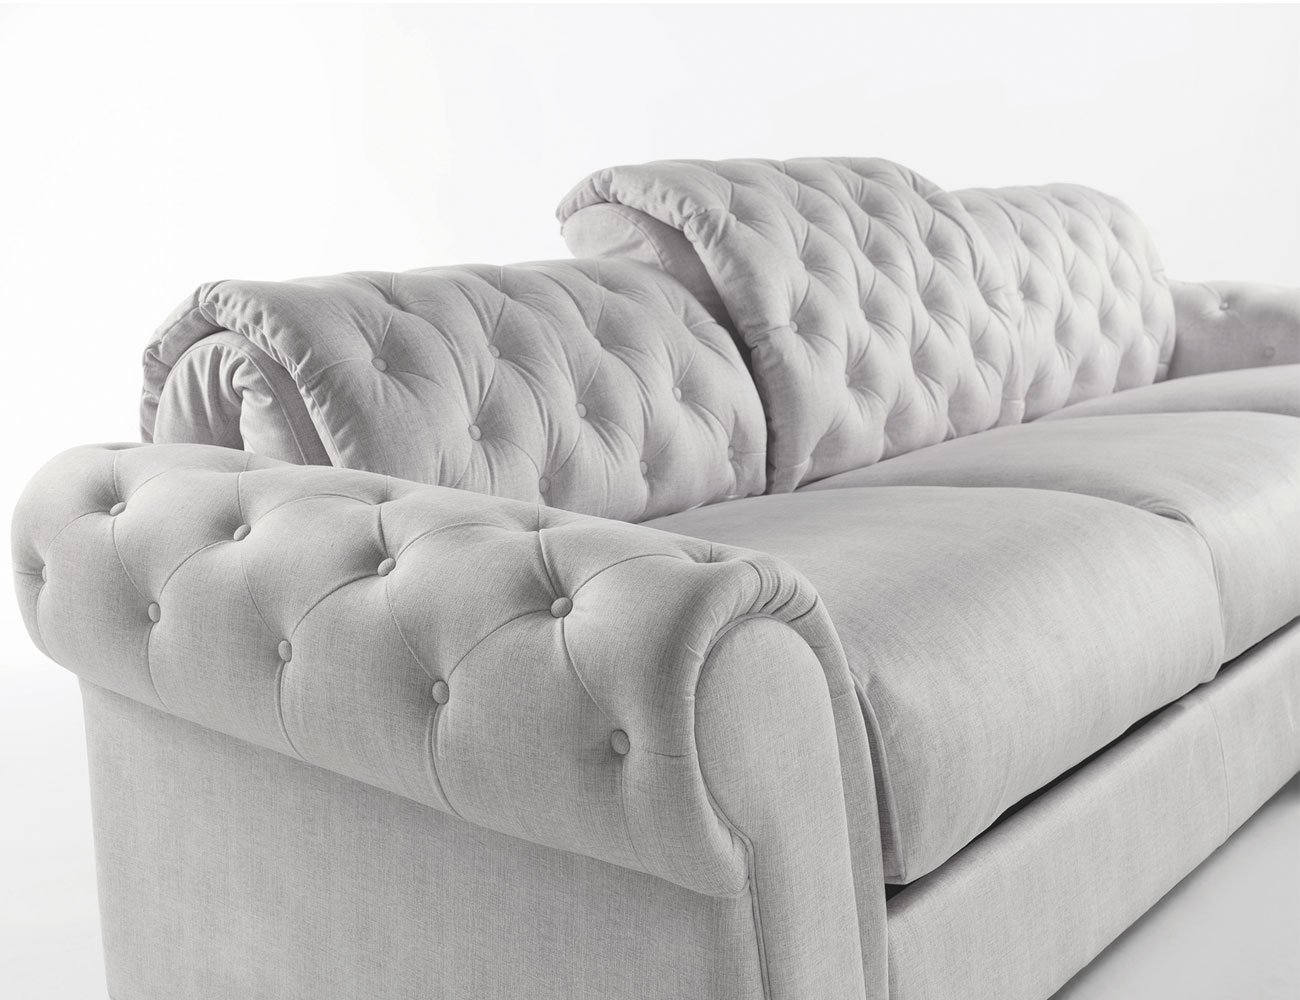 Sofa chaiselongue gran lujo decorativo capitone blanco tela 1